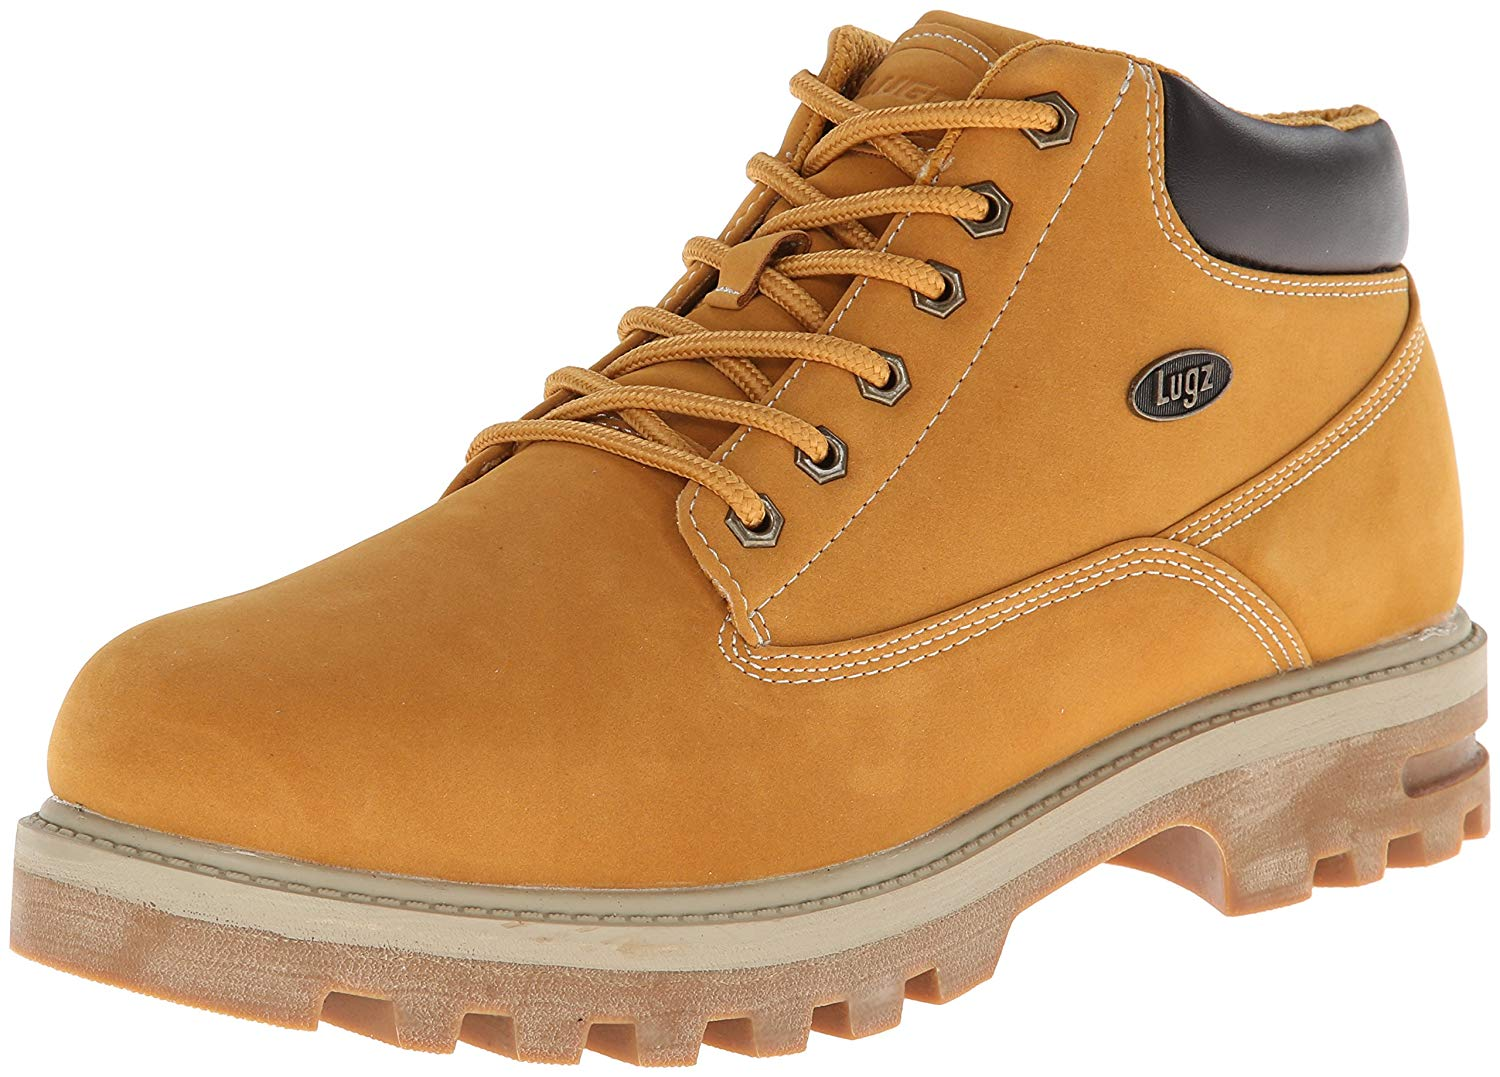 Lugz boots amazon.com | lugz menu0027s empire wr thermabuck boot | industrial u0026  construction boots RAMVUEB